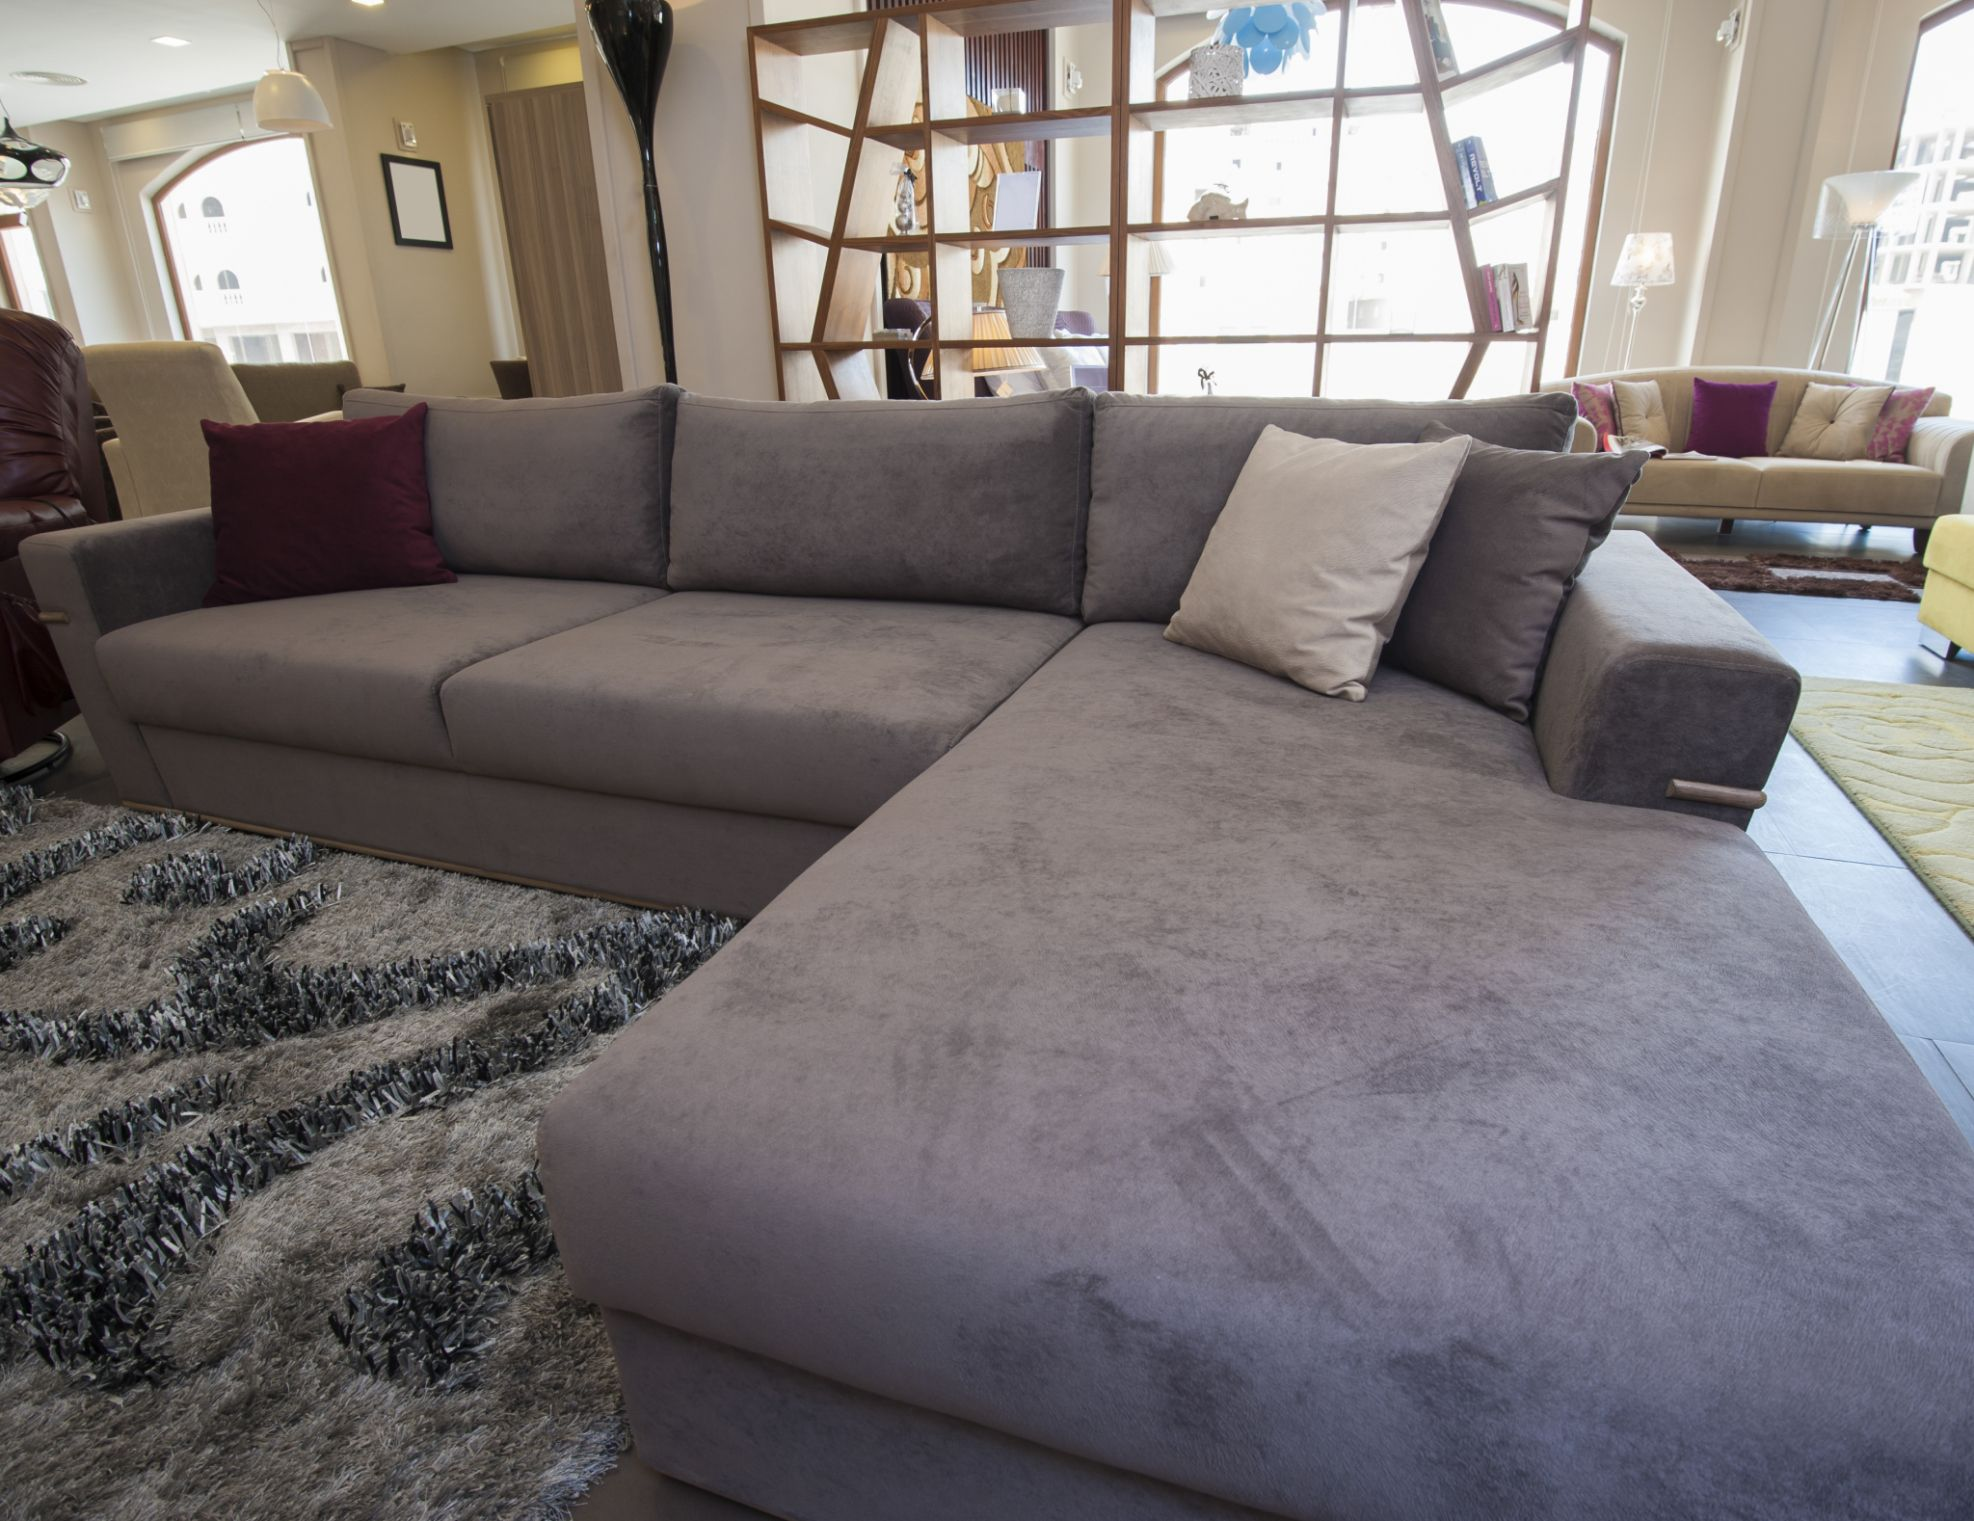 The Types Of Sofa Fabric Hunker In 2020 Types Of Sofas Cheap Living Room Sets Couch Fabric